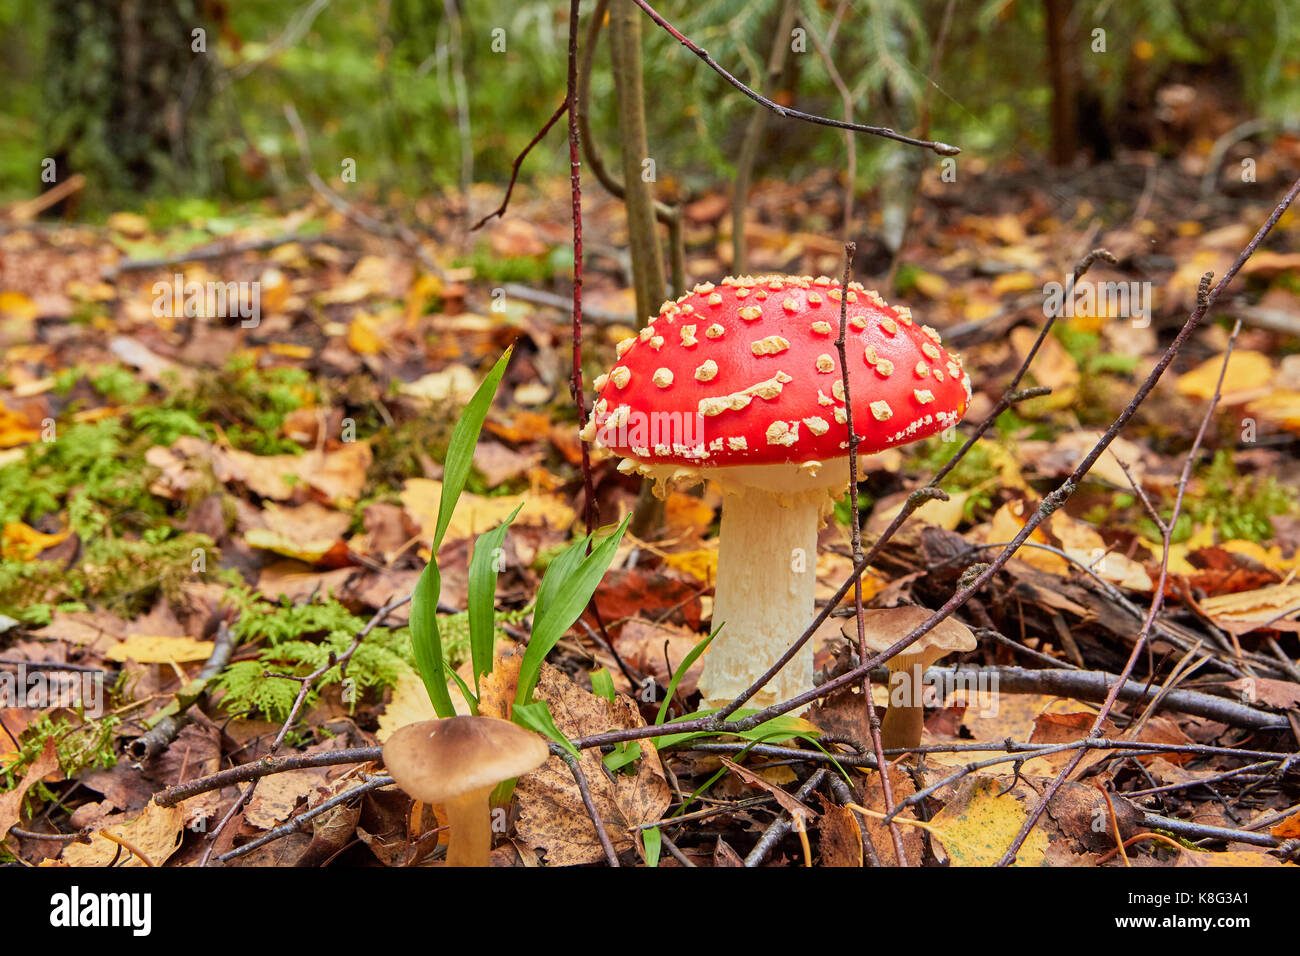 fly agaric bright red cap stockfotos fly agaric bright red cap bilder alamy. Black Bedroom Furniture Sets. Home Design Ideas